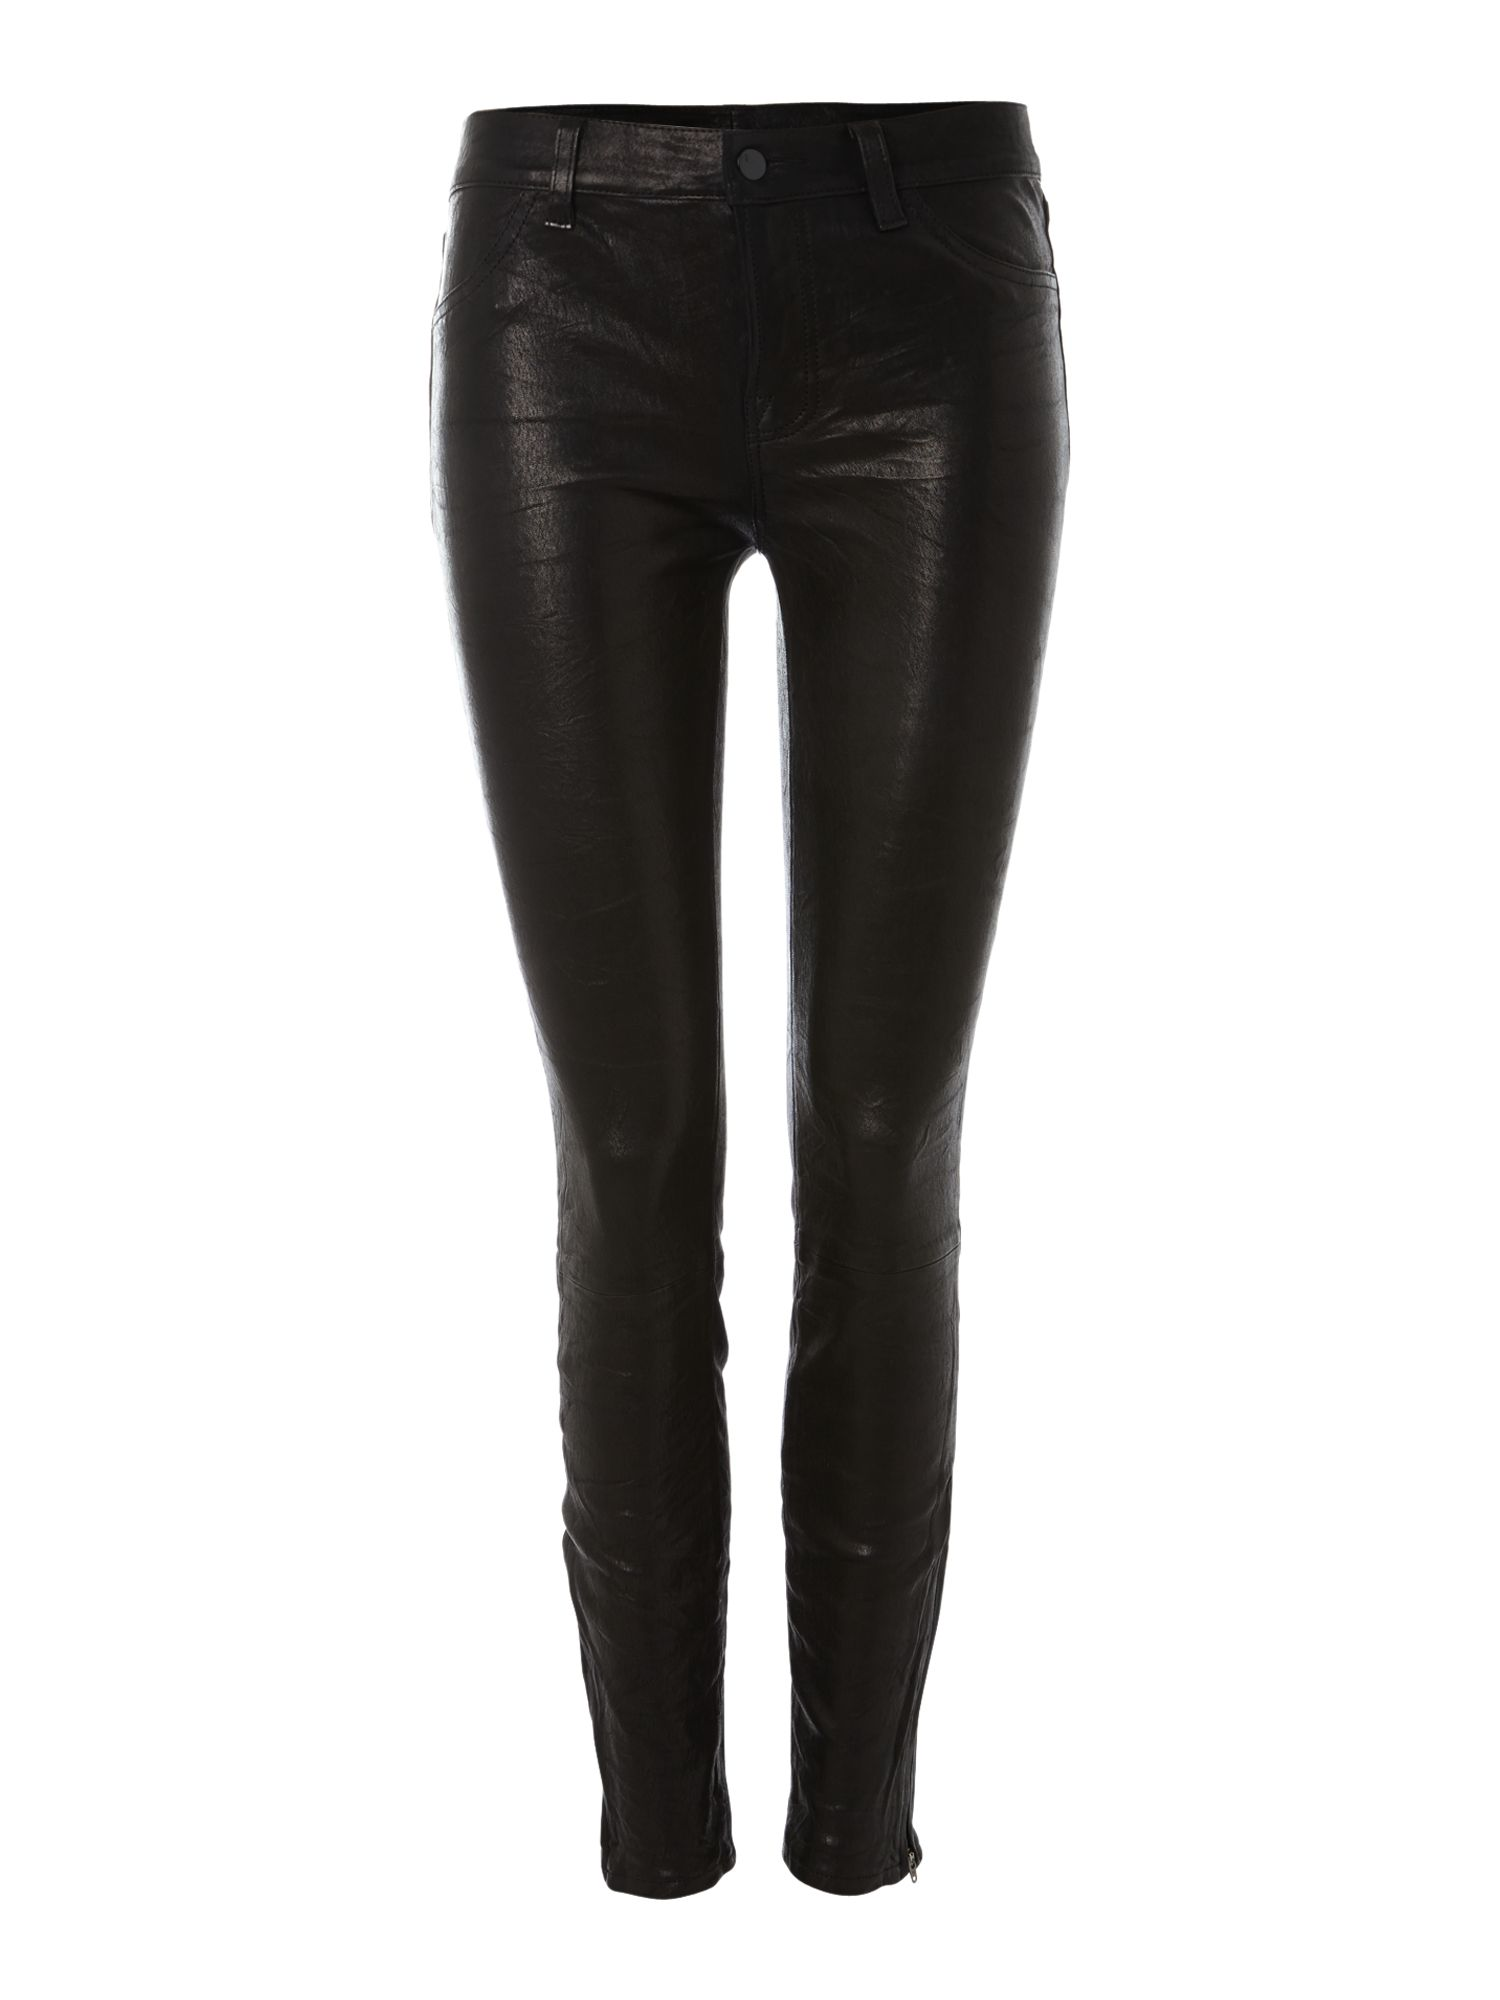 J Brand L8001 leather super skinny legging in noir, Black